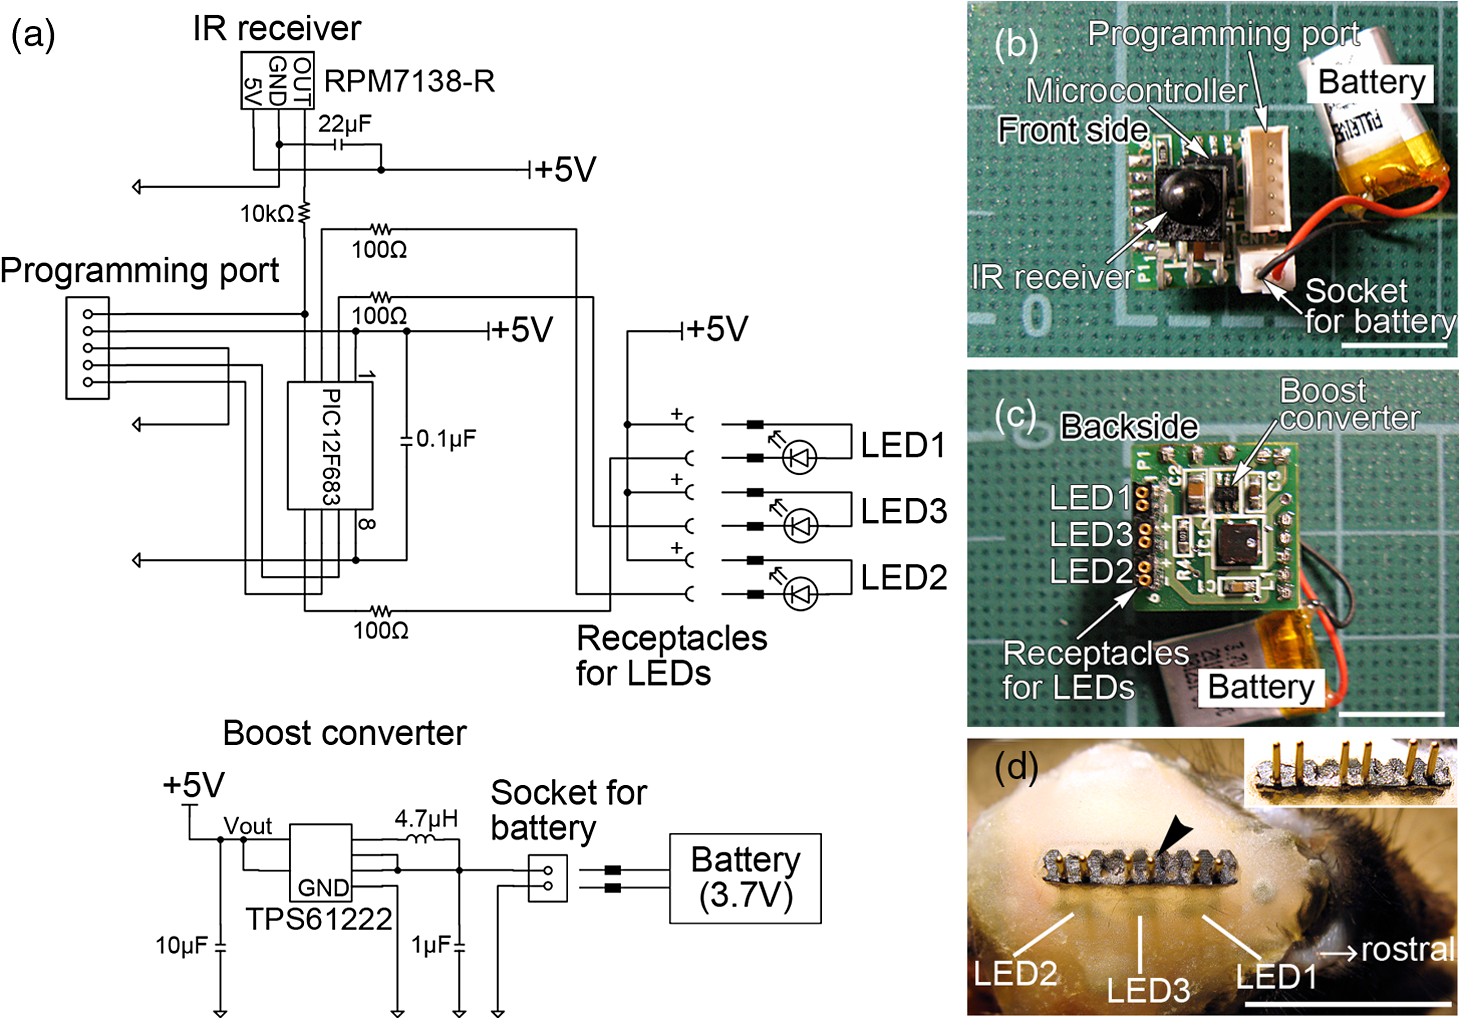 Programmable Wireless Light Emitting Diode Stimulator For Chronic Rgb Led Fashion Lighting Controller Circuit Schematic Circuits Connector Indicated By An Arrowhead Serves As The Interface Between Leds And Inset Shows Side View Of Plug